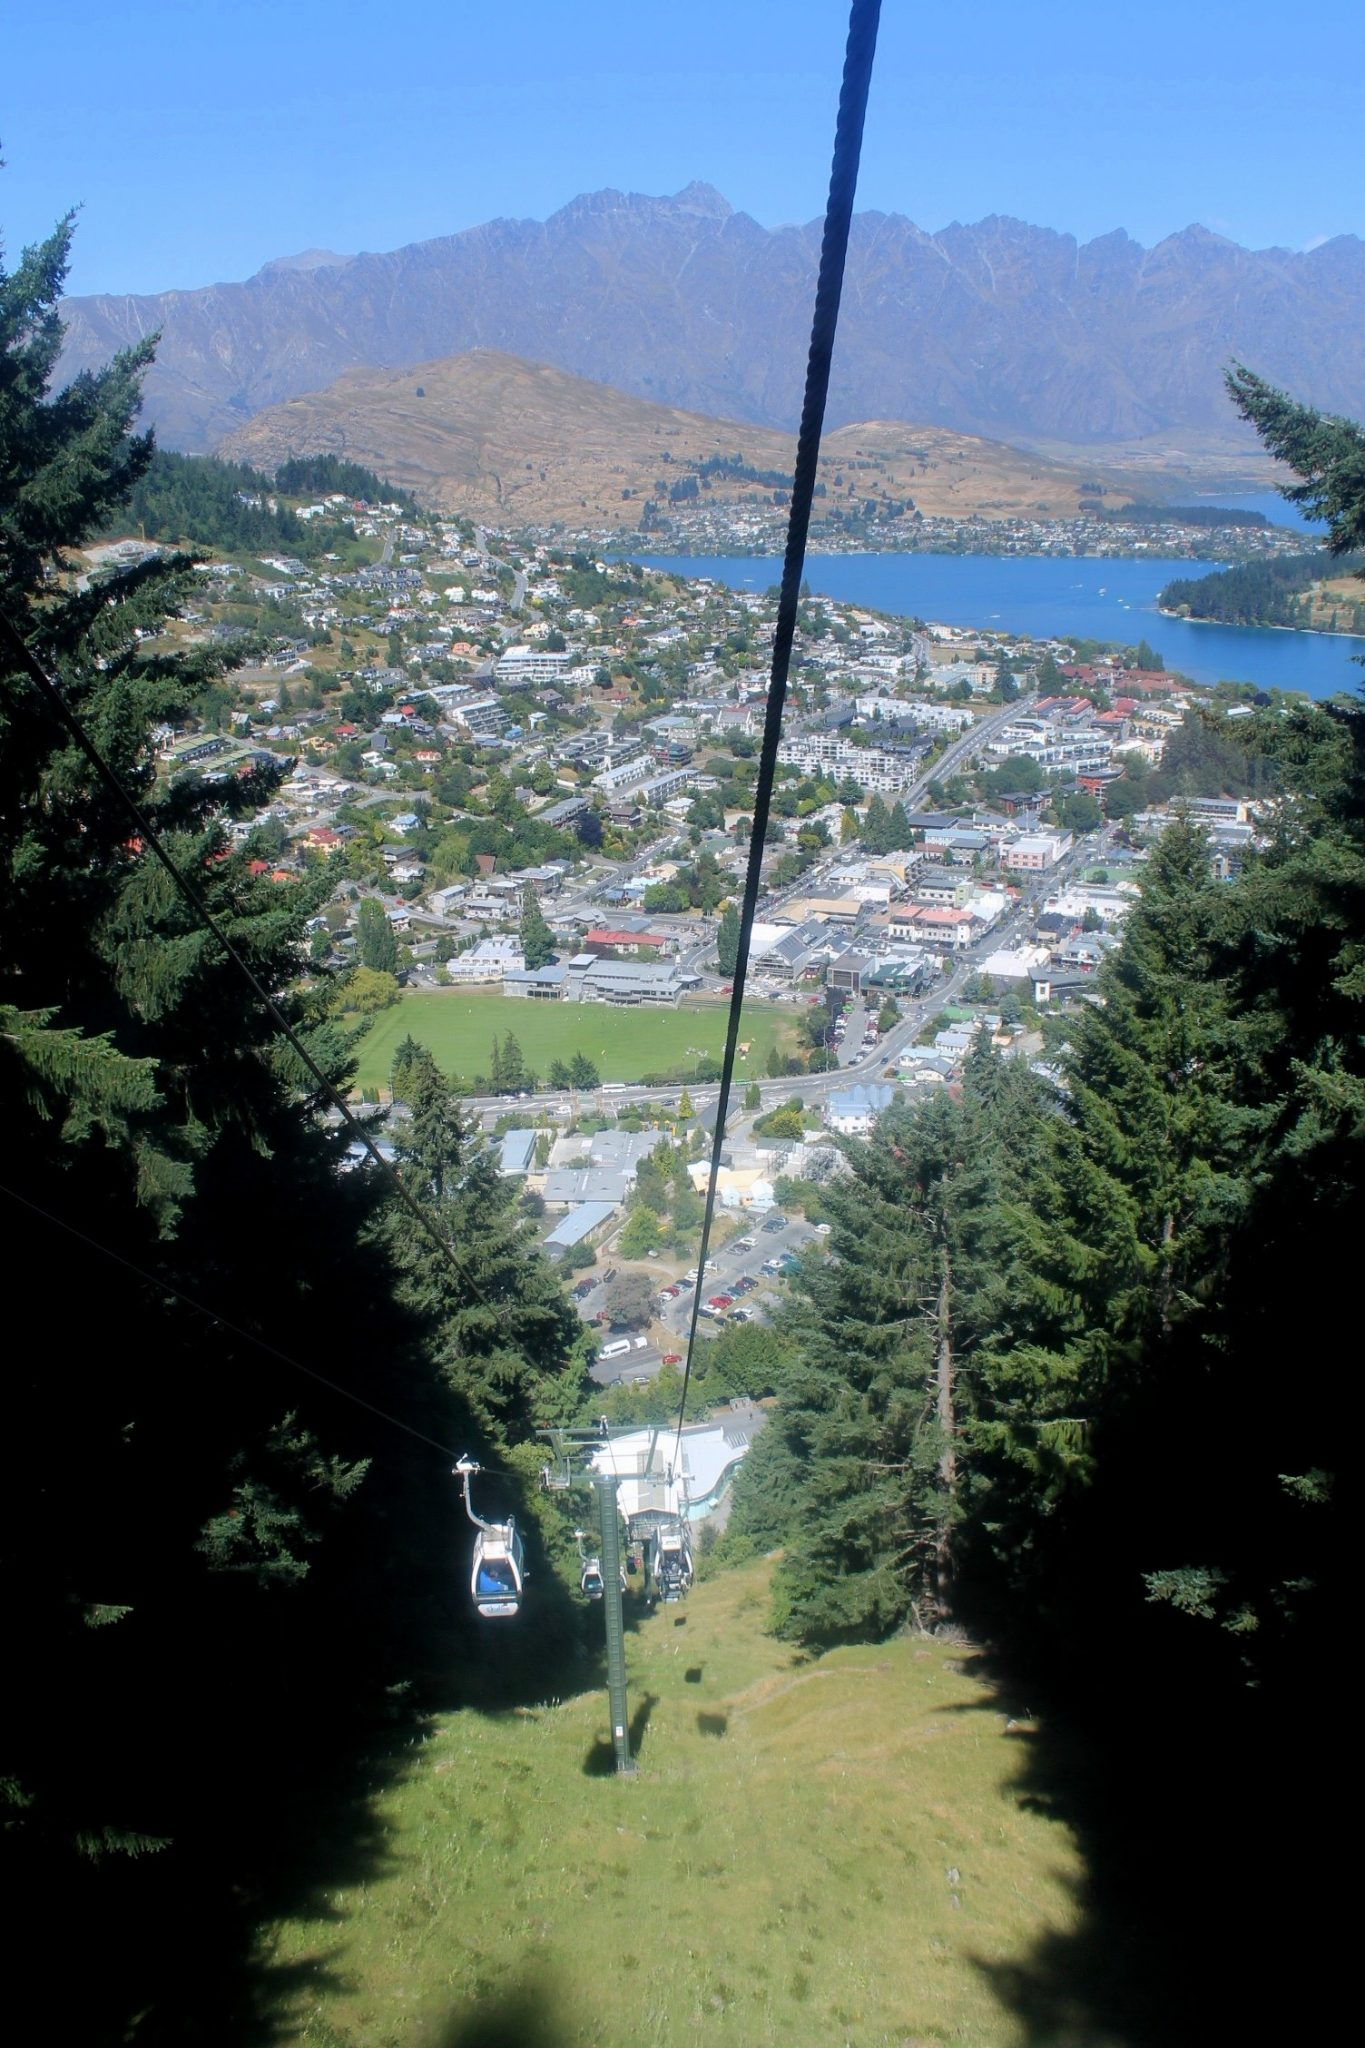 Gondola in Queenstown, New Zealand